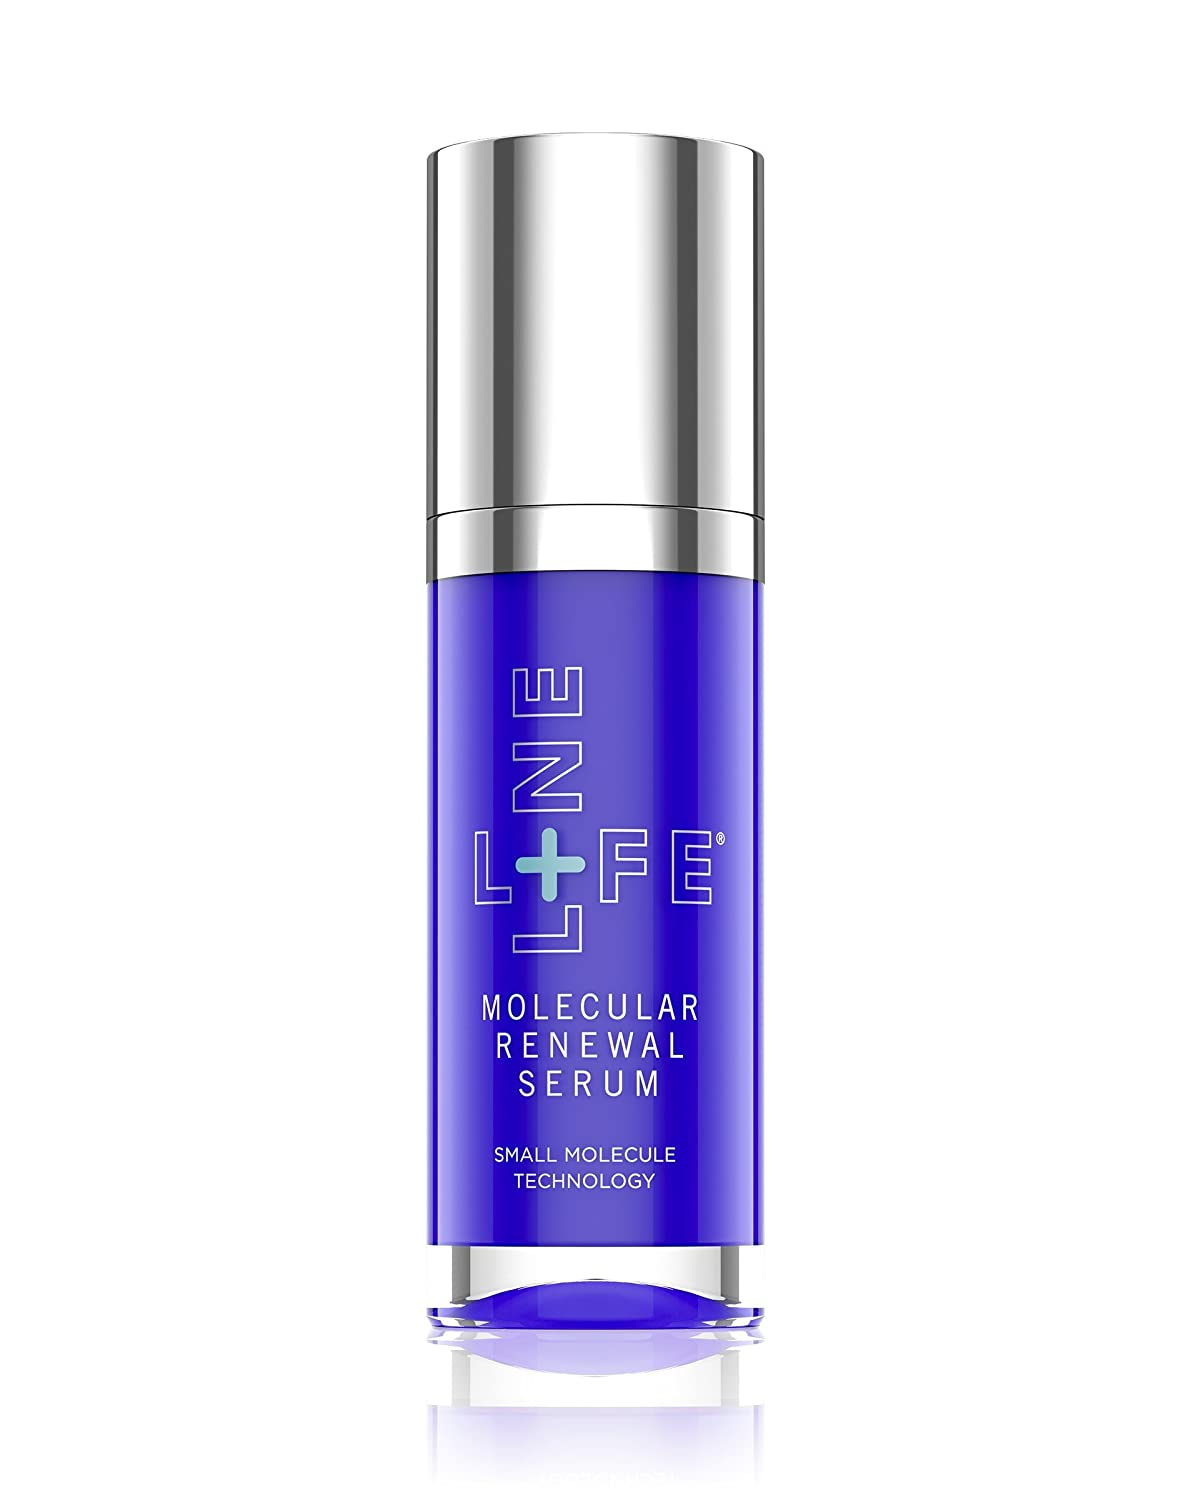 Lifeline Skincare Collagen Booster (Molecular Renewal Serum) Fragrance Free Reduces Signs of Aging, retinol like effects with, no irritation